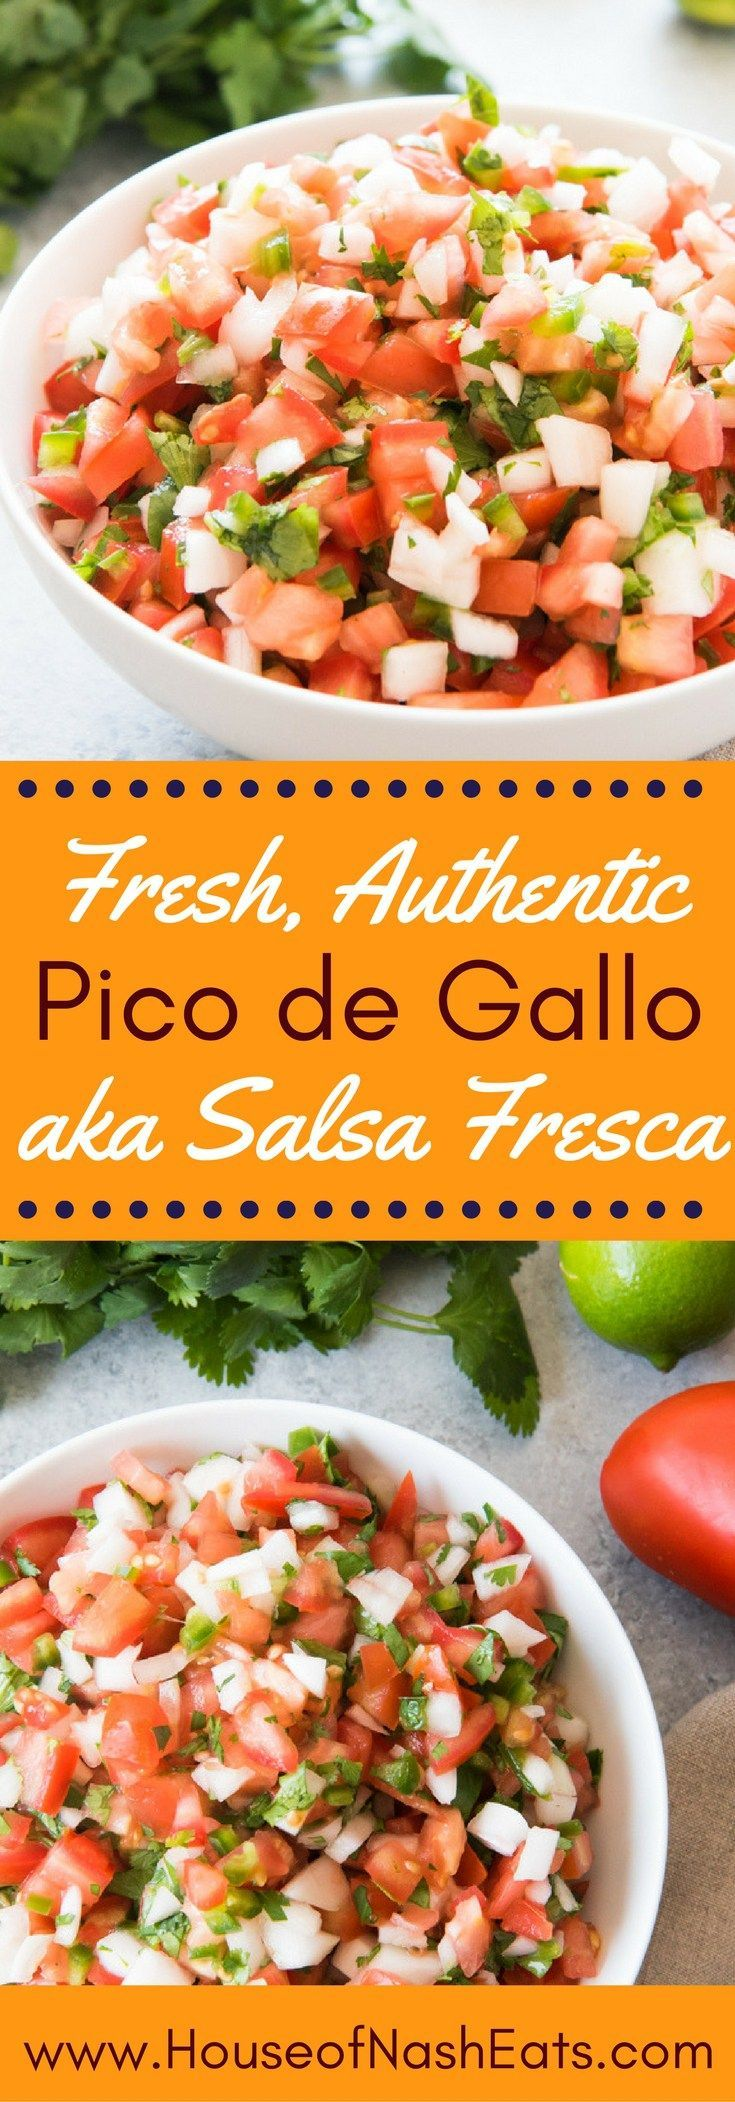 Authentic, fresh, Mexican Pico de Gallo, aka Salsa Fresca, is super easy to make and can be used in so many ways, from topping chicken or fish, adding to tacos, salads, and more, or just serving as a salsa with chips!  We even eat it at breakfast!  Even b